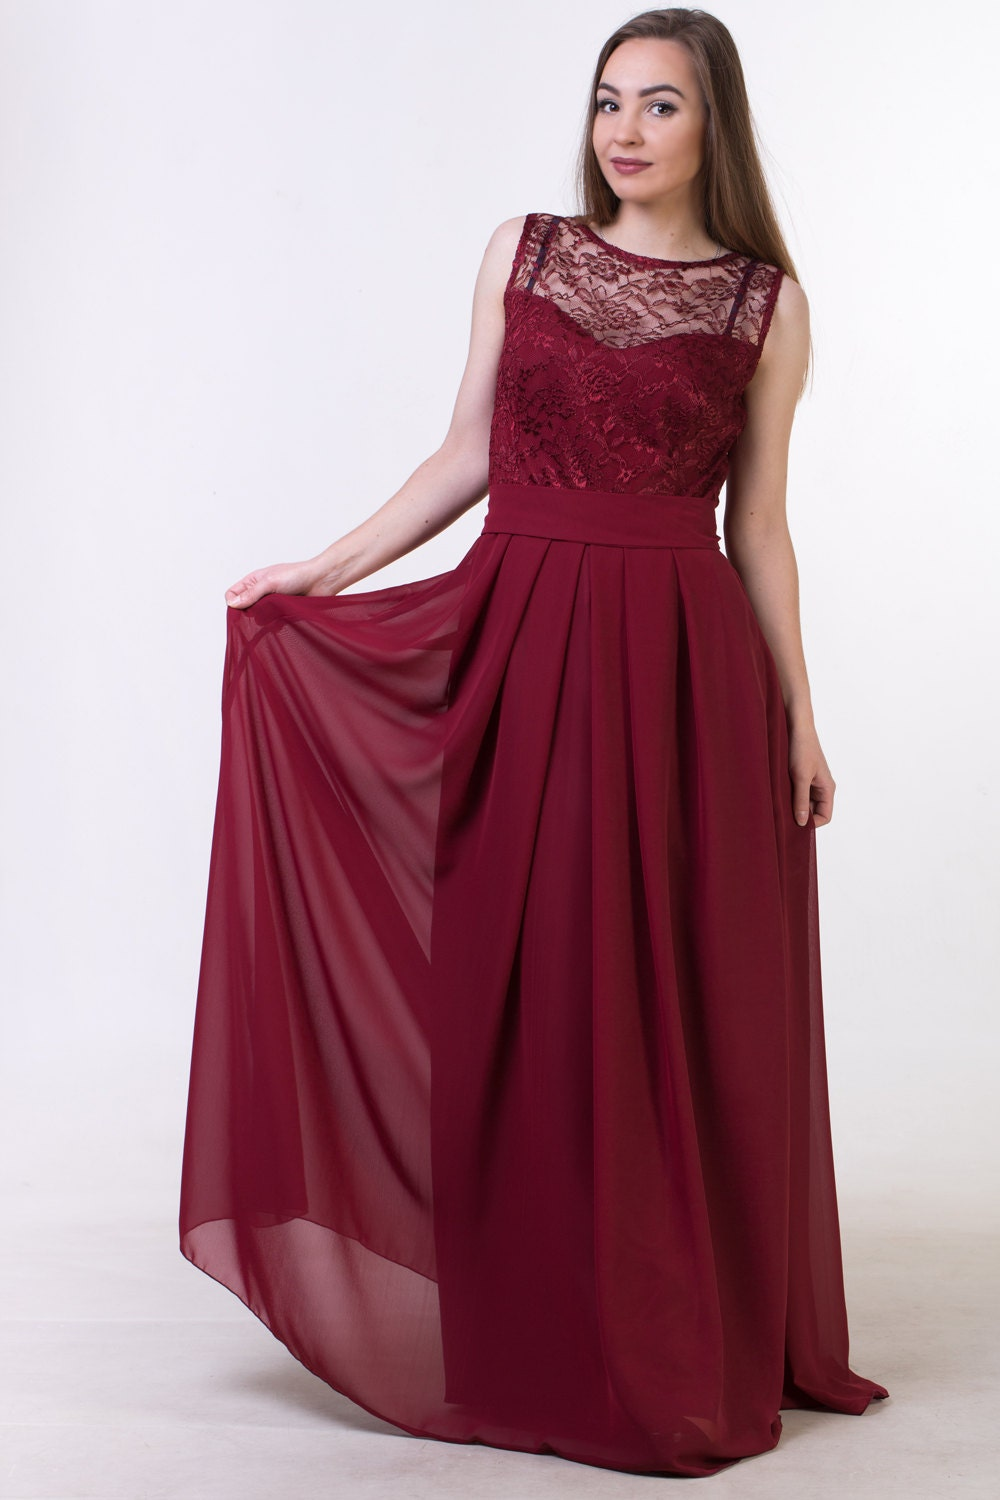 Red wine bridesmaid dress burgundy red bridesmaid dress red zoom ombrellifo Gallery